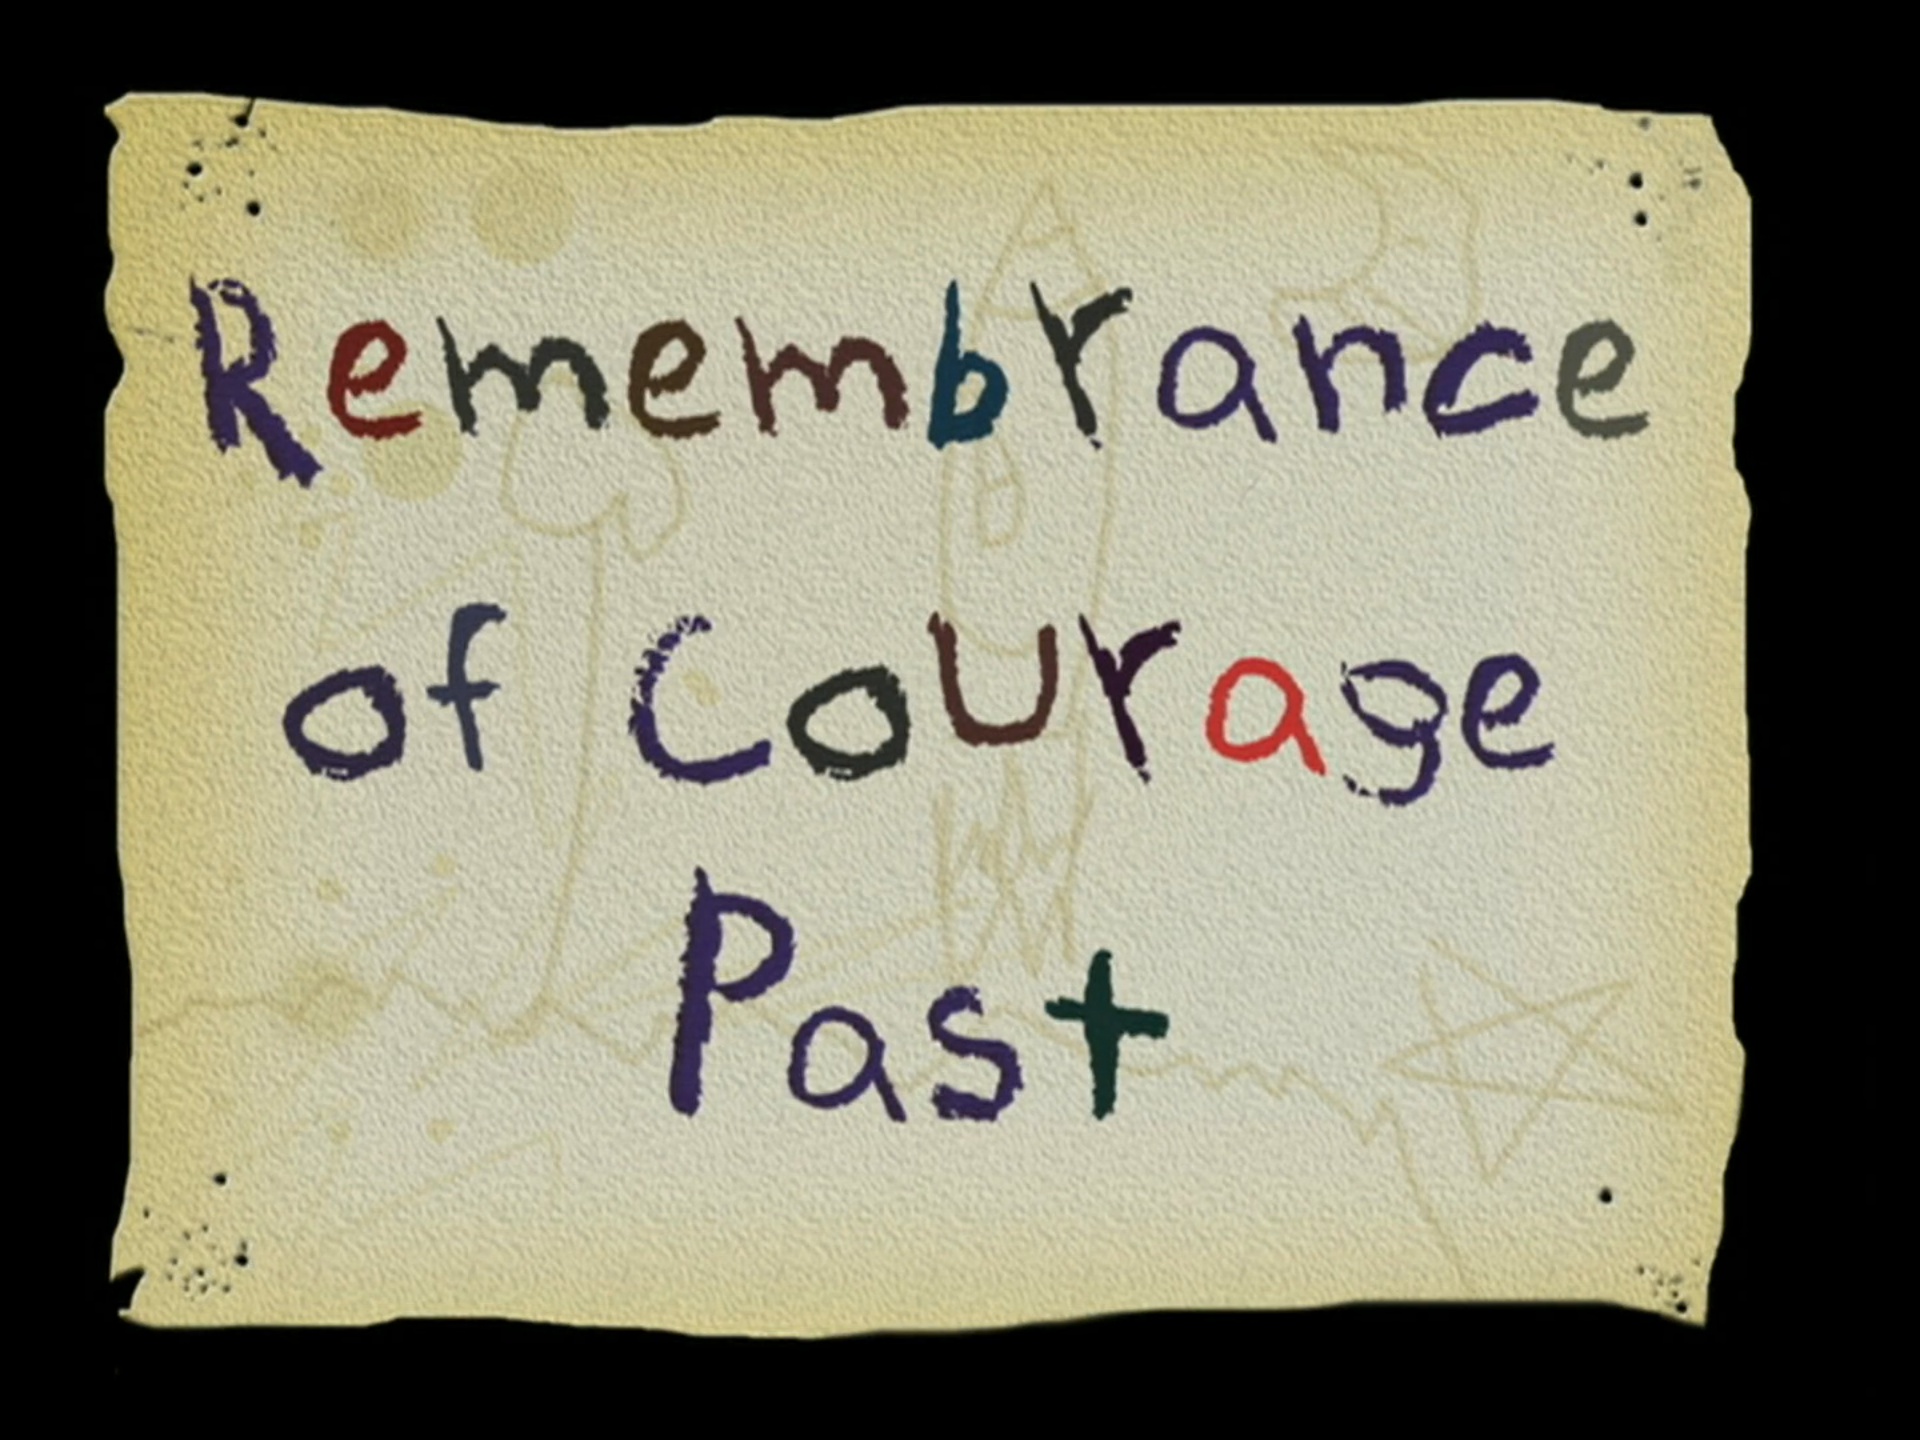 Remembrance of Courage Past